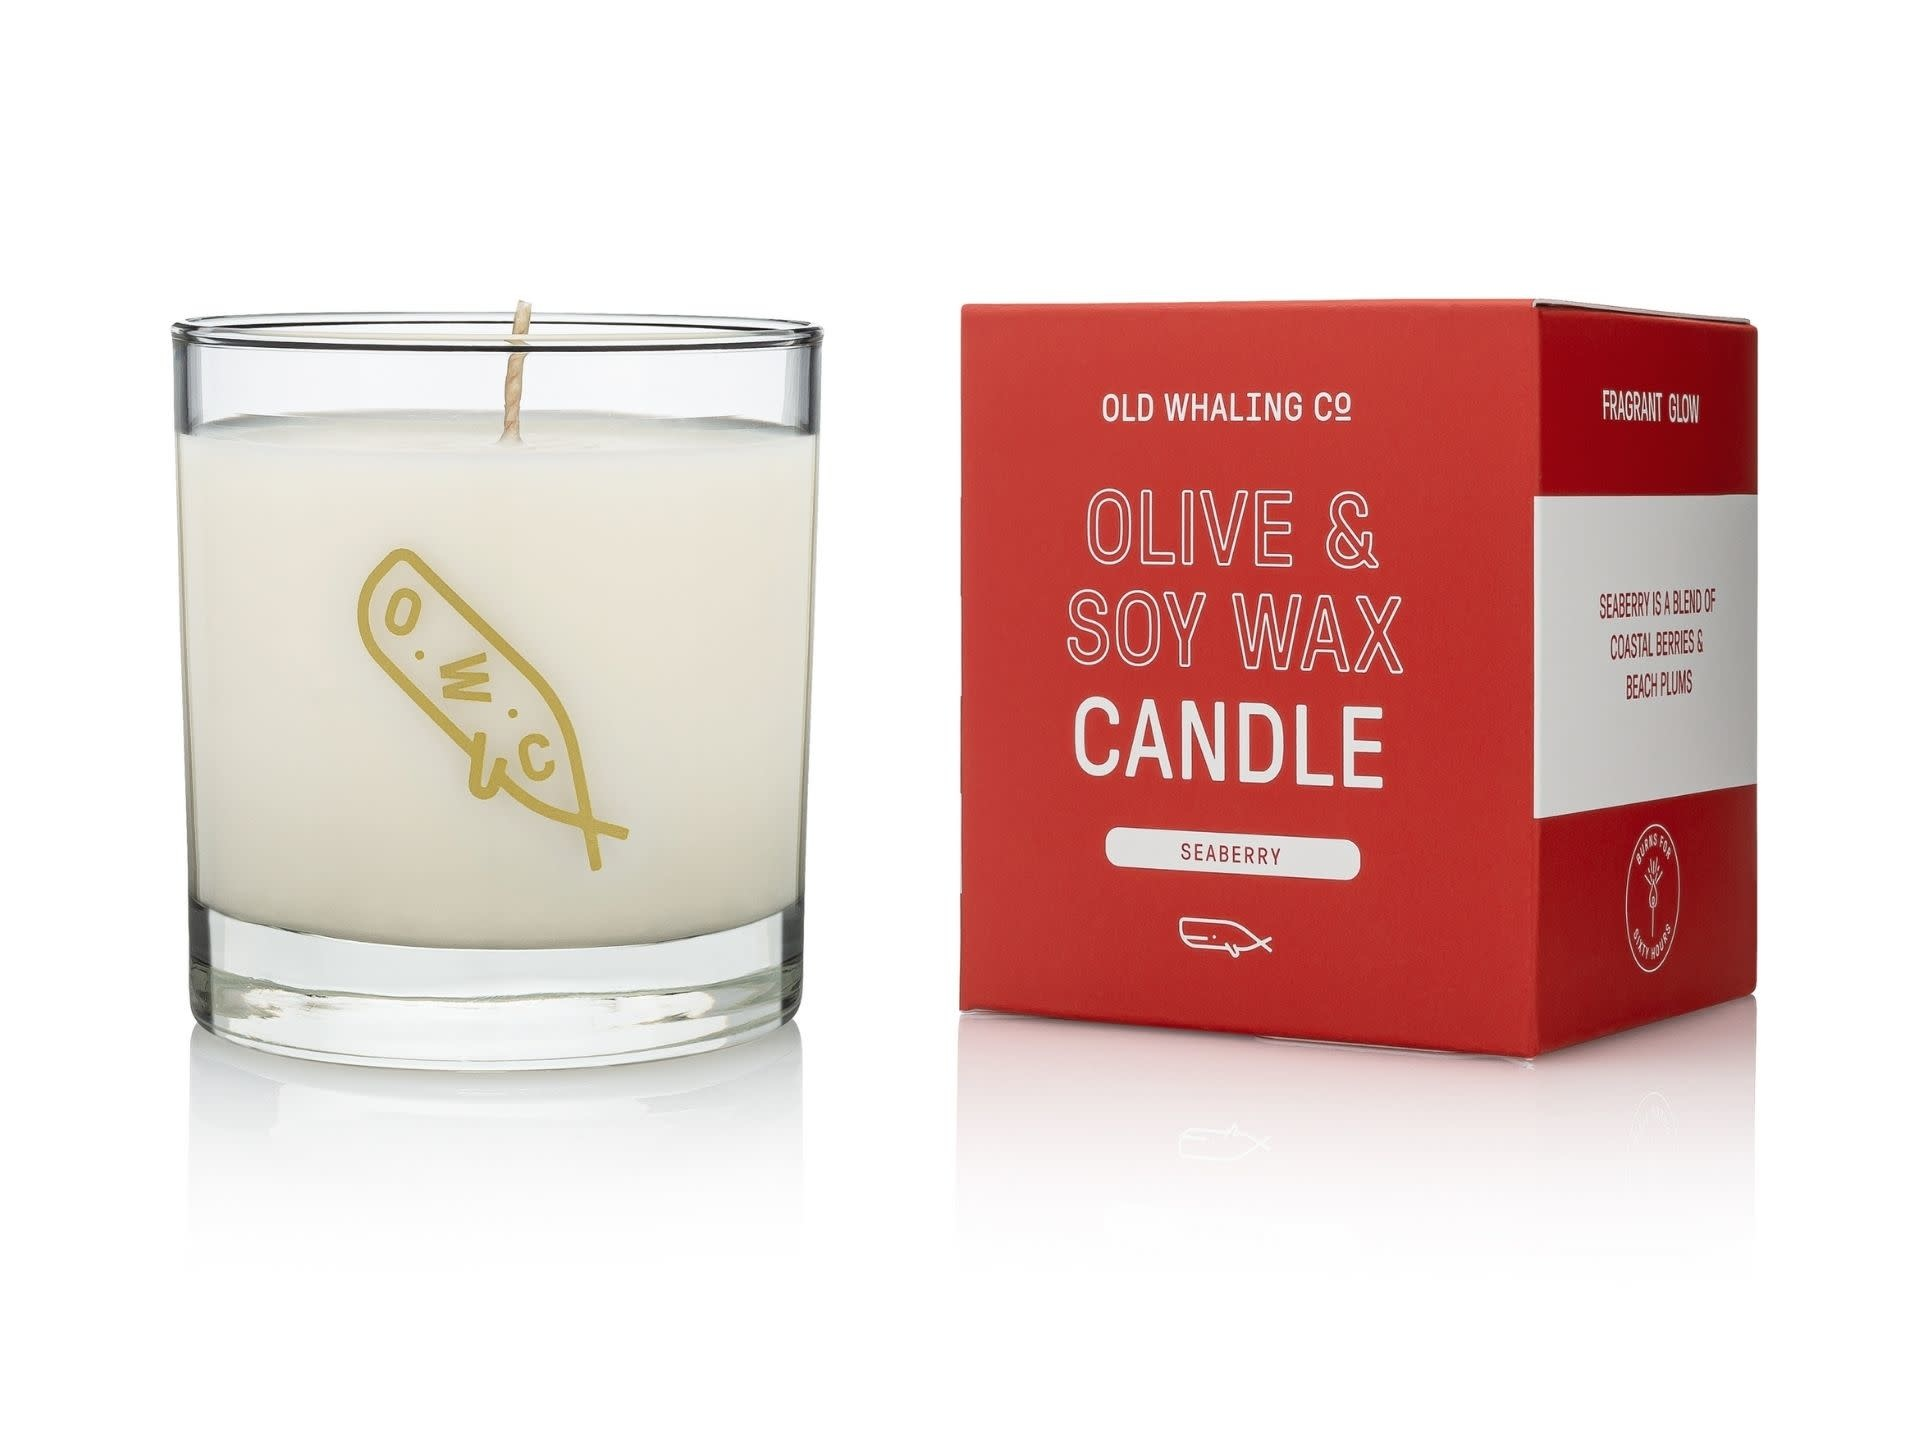 Seaberry Candle